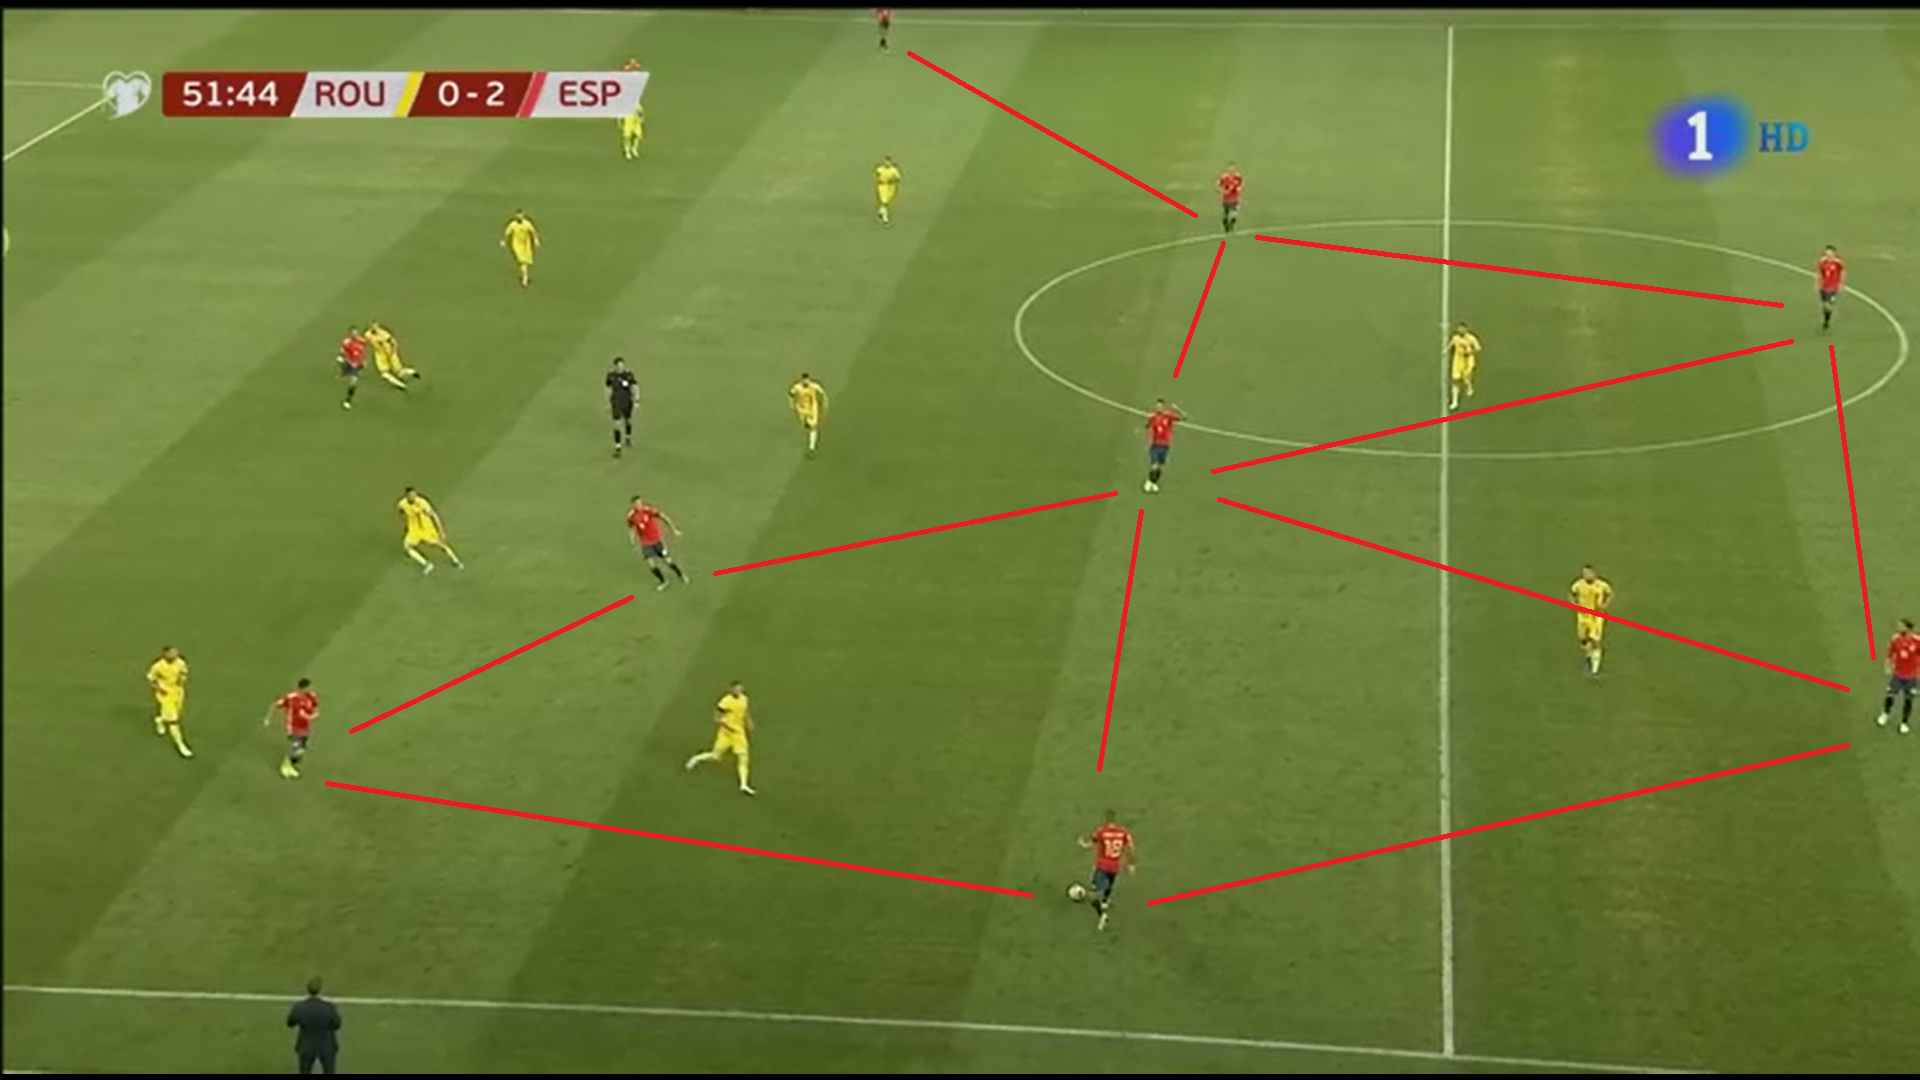 EURO 2020 Qualifiers: Romania vs Spain tactical analysis tactics